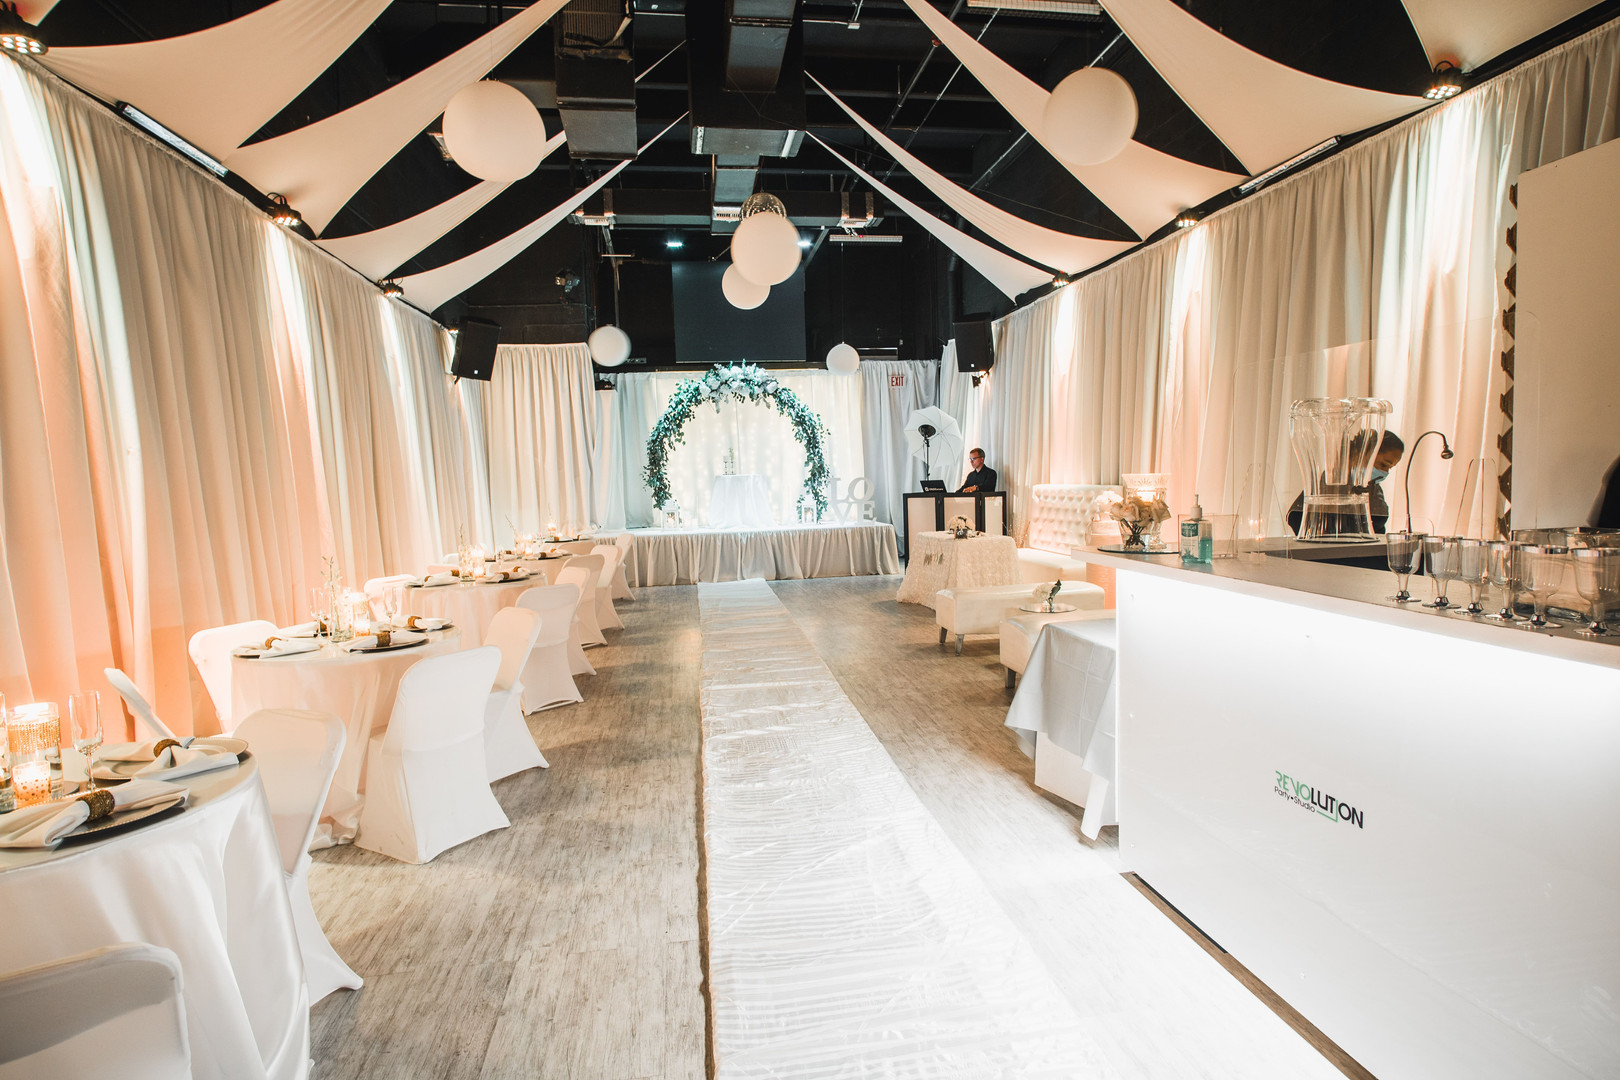 Wedding venue with a white carpet along the floor in Kendall Miami